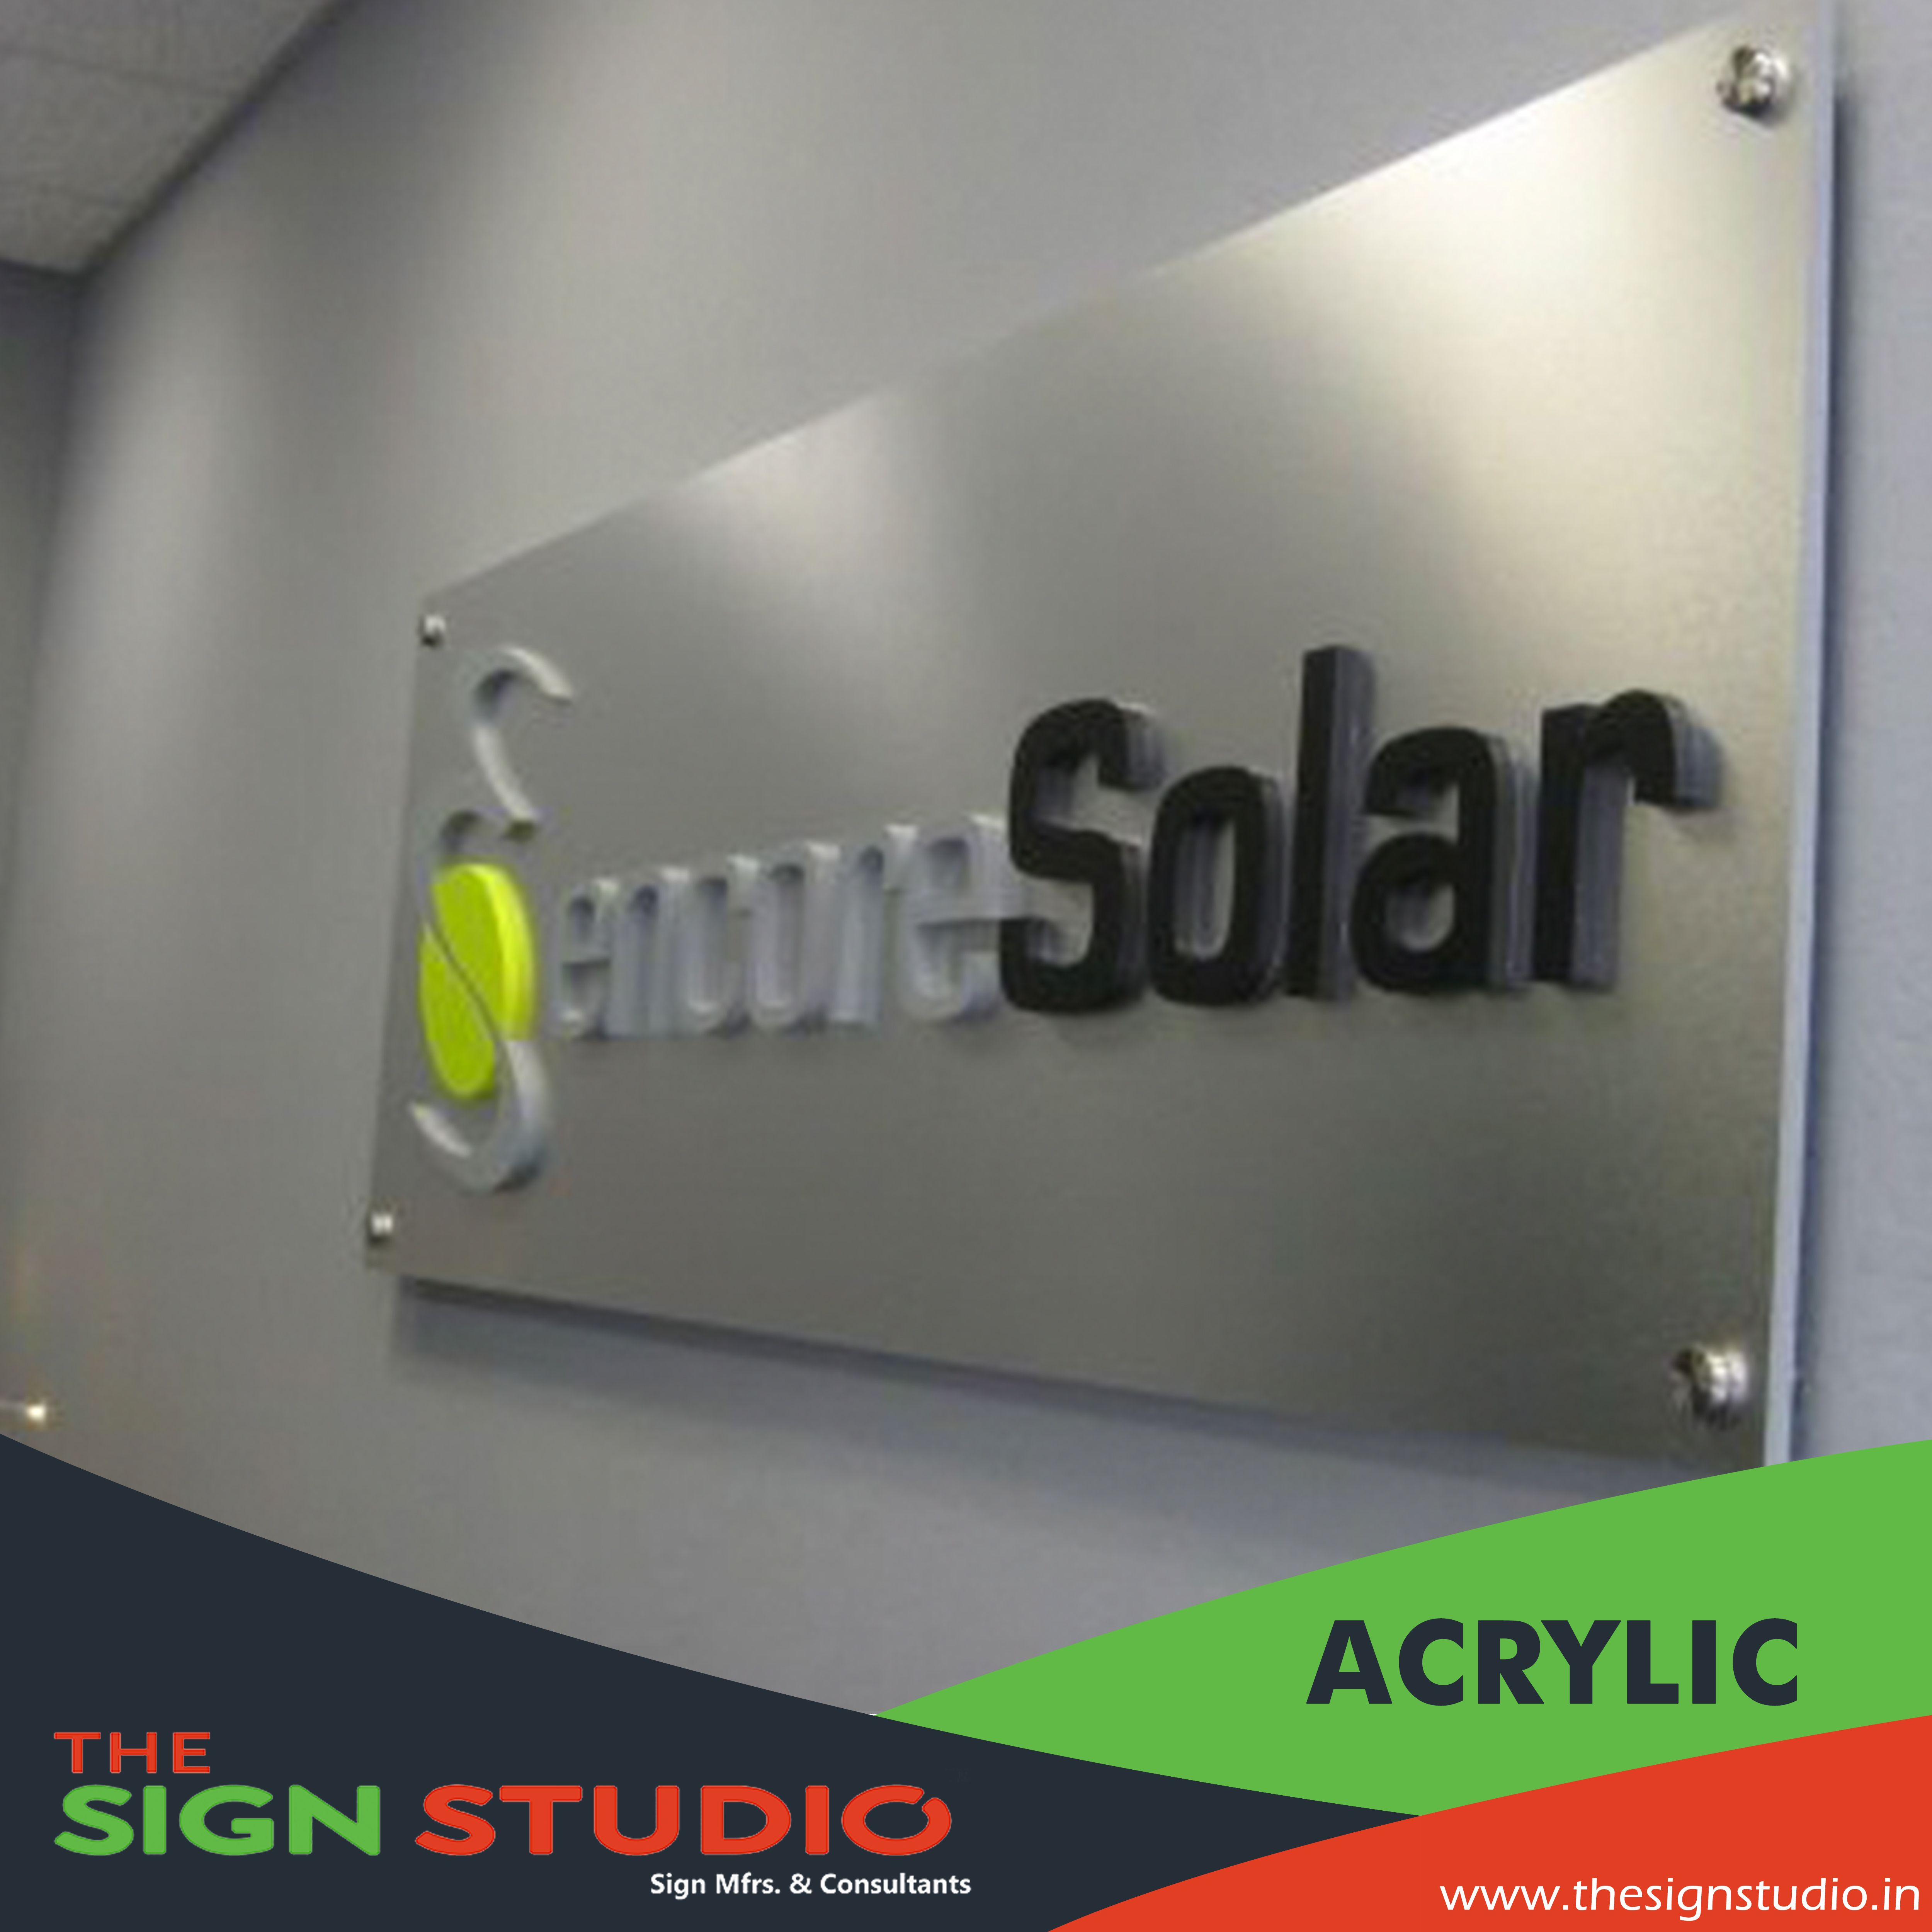 THE SIGN STUDIO manufactures Acrylic signboard, indoor and